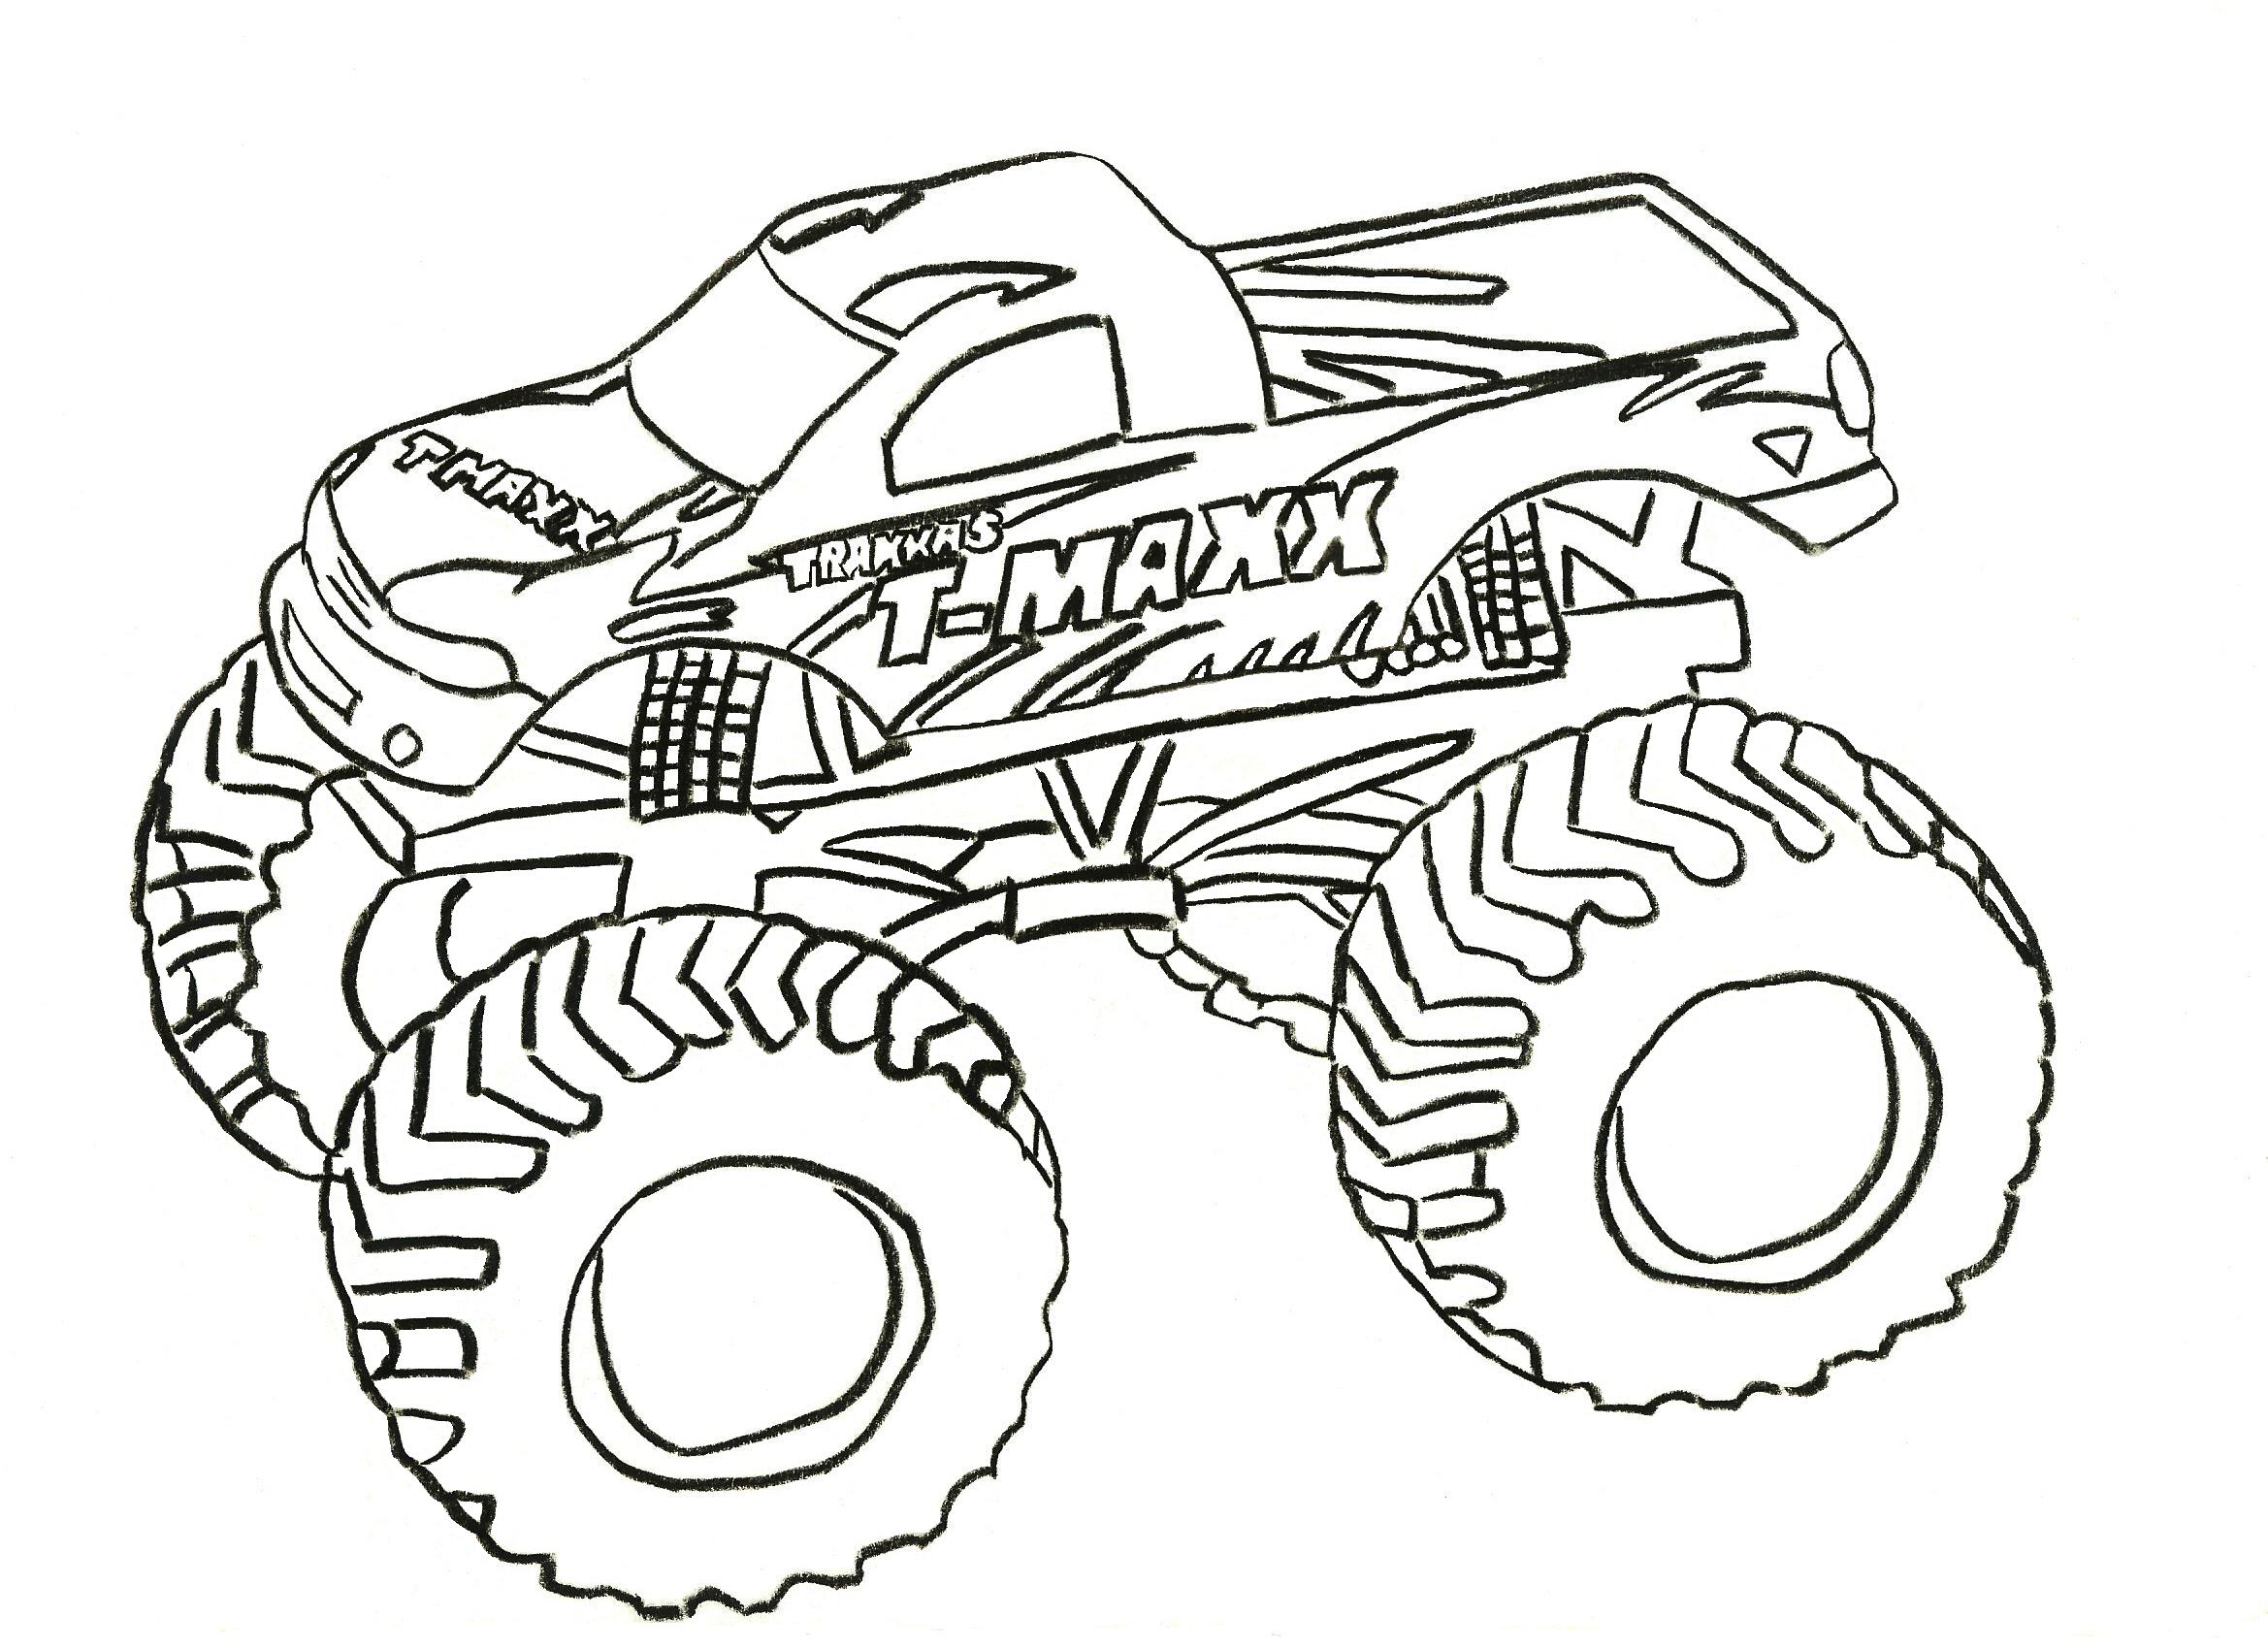 Adult Beauty Free Coloring Pages Monster Trucks Gallery Images top free printable monster truck coloring pages for kids gallery images